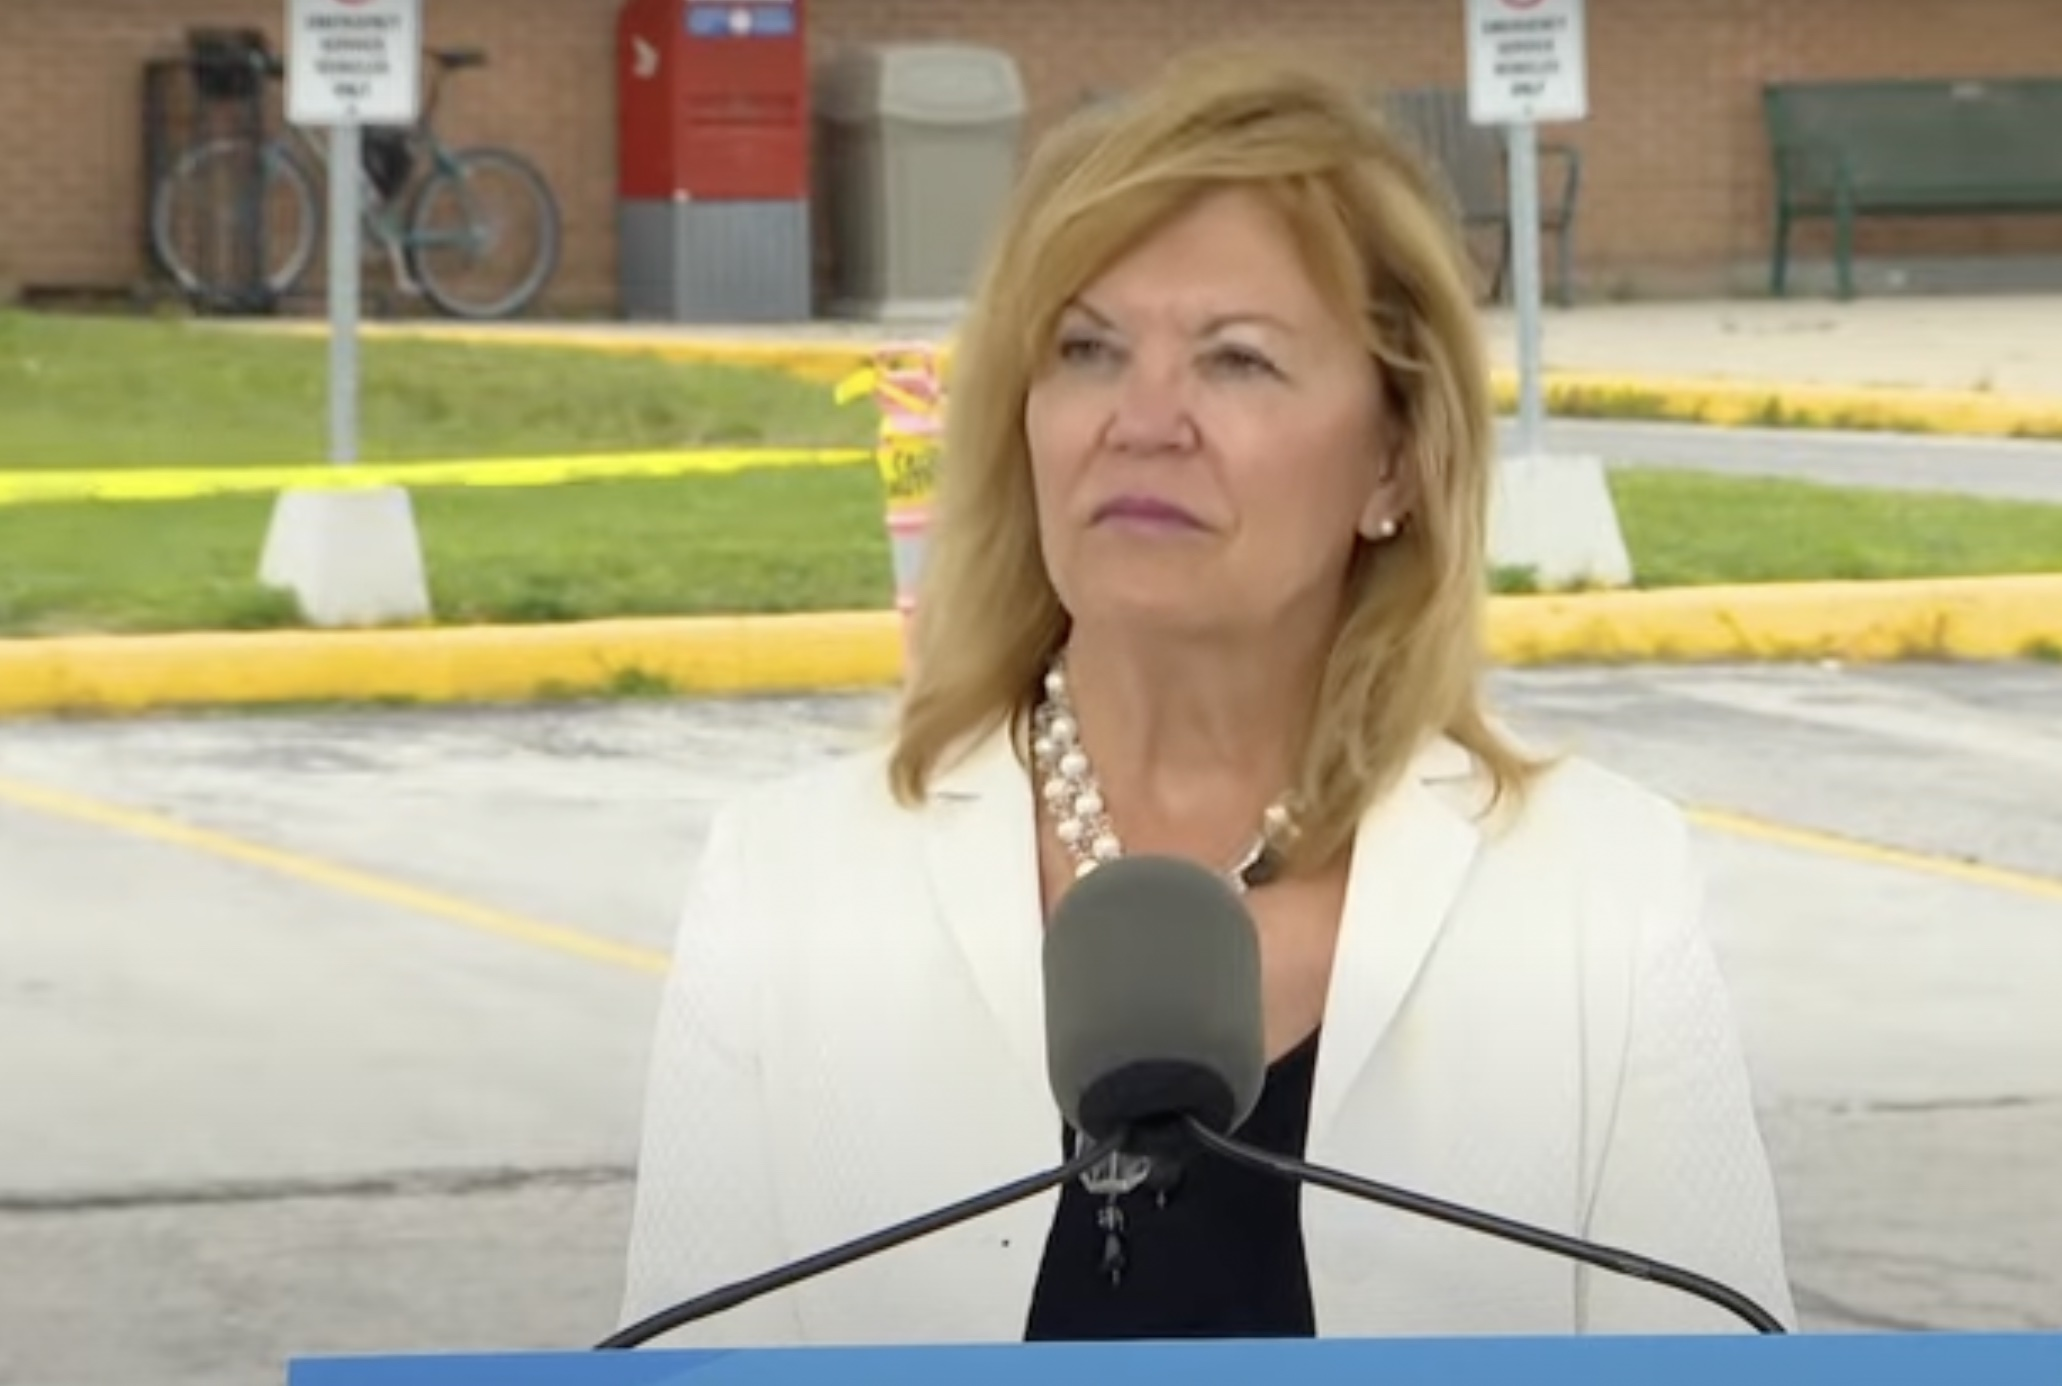 Ontario health minister muses about smart card for proof-of-vaccination